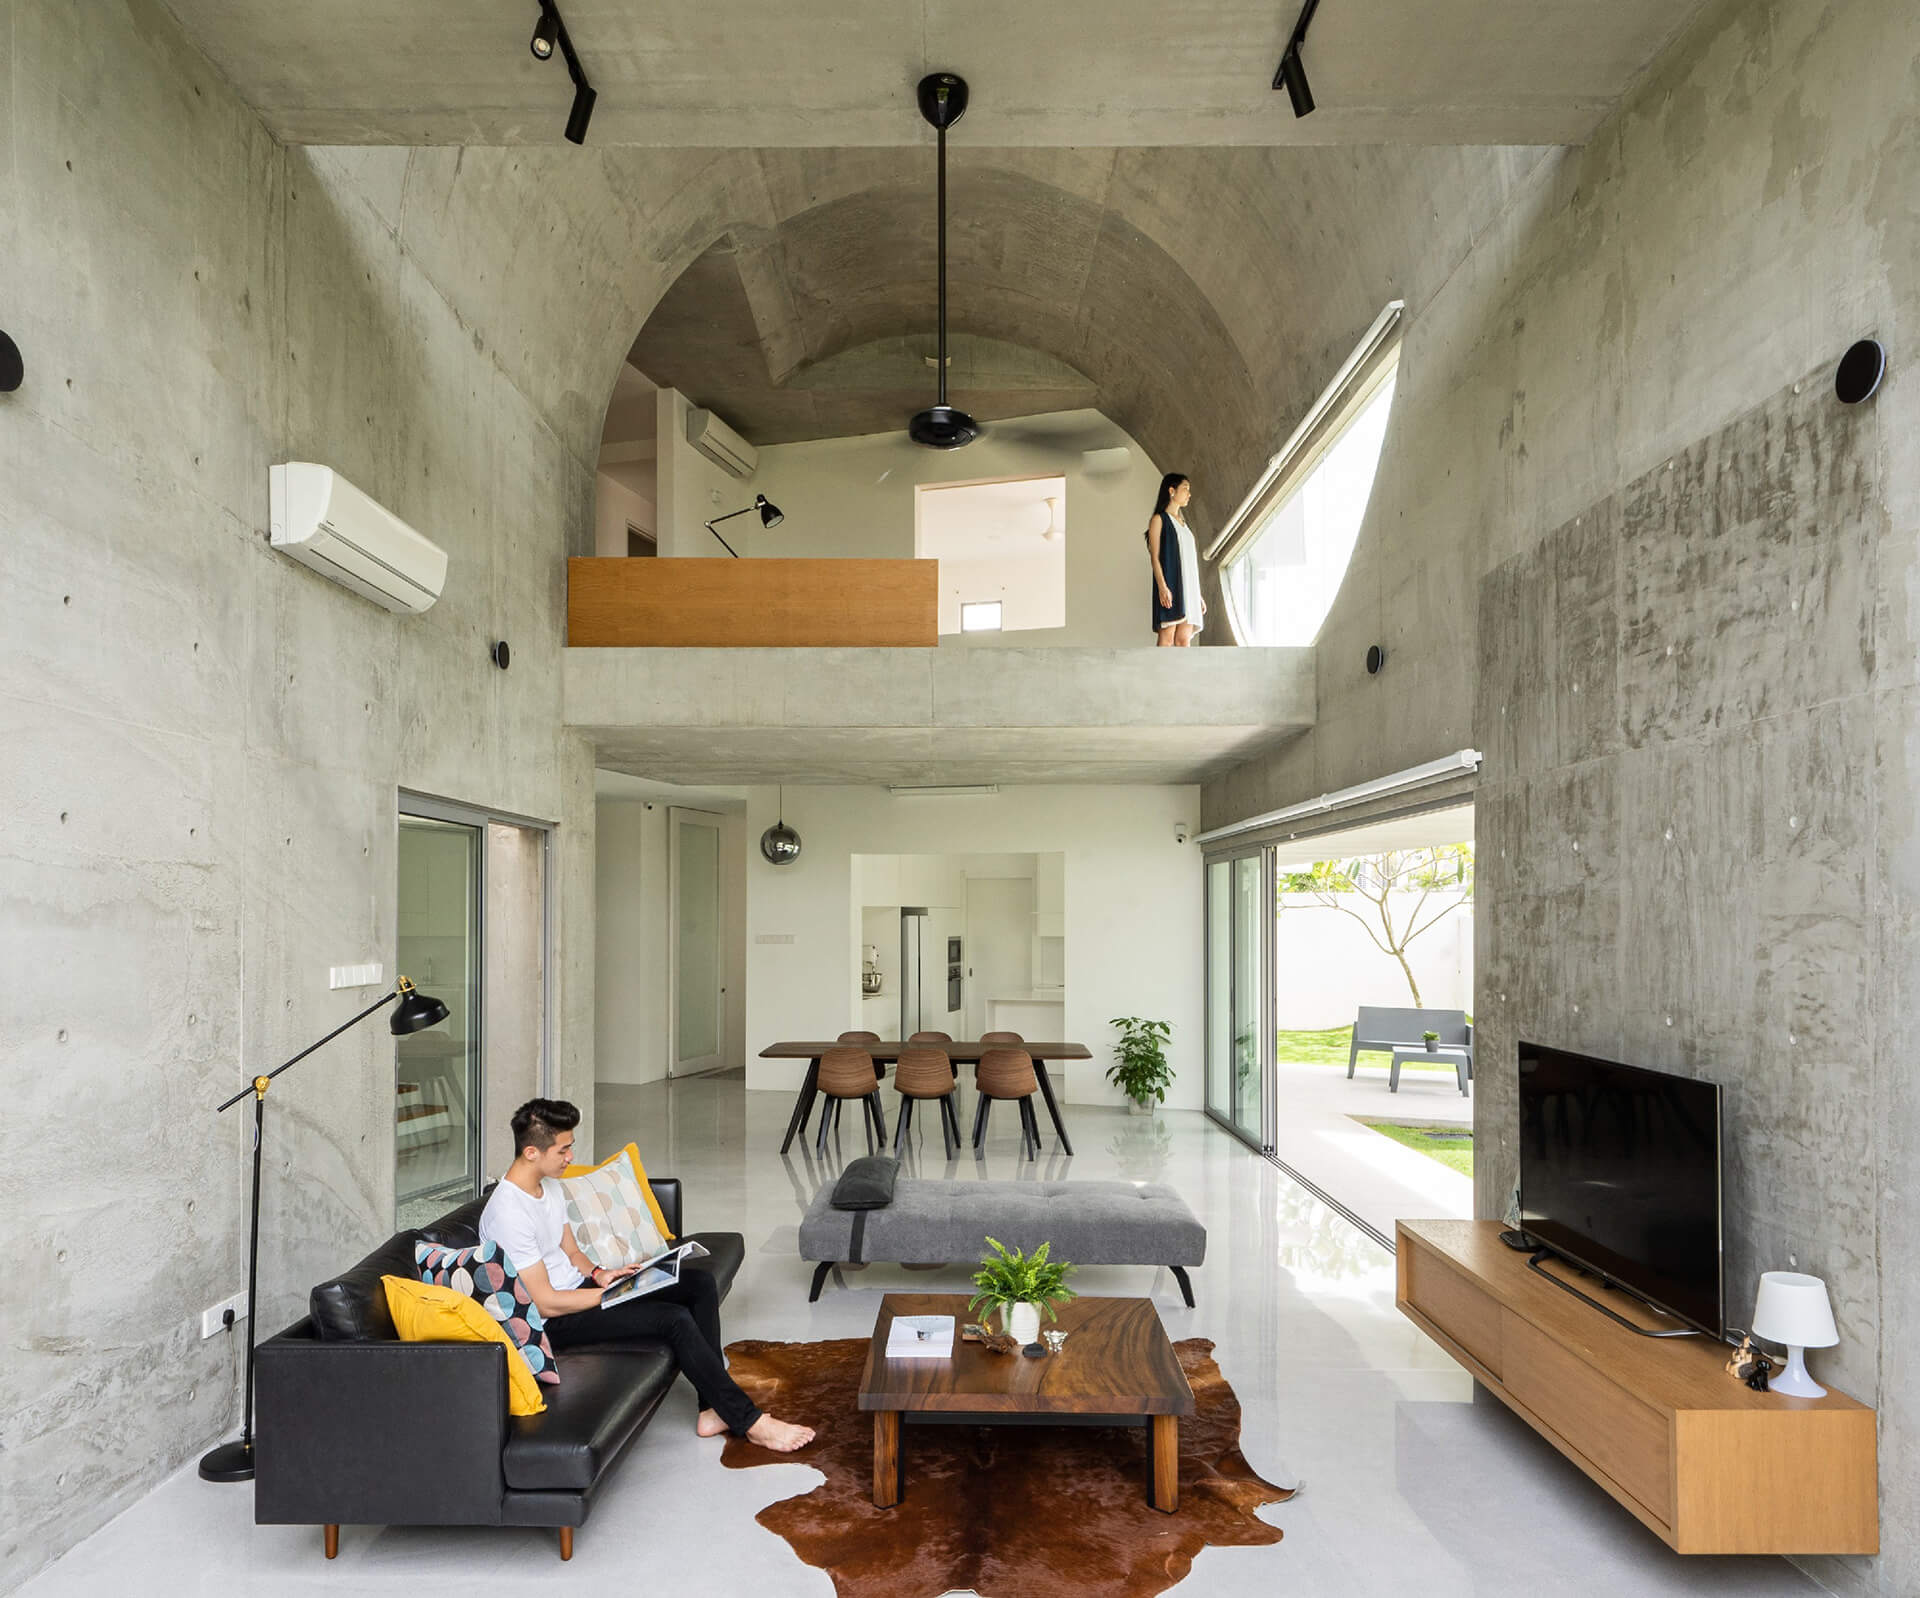 The living space with the dining and vaulted mezzanine in the background | Kuala Lampur, Malaysia | Fabian Tan | STIRworld